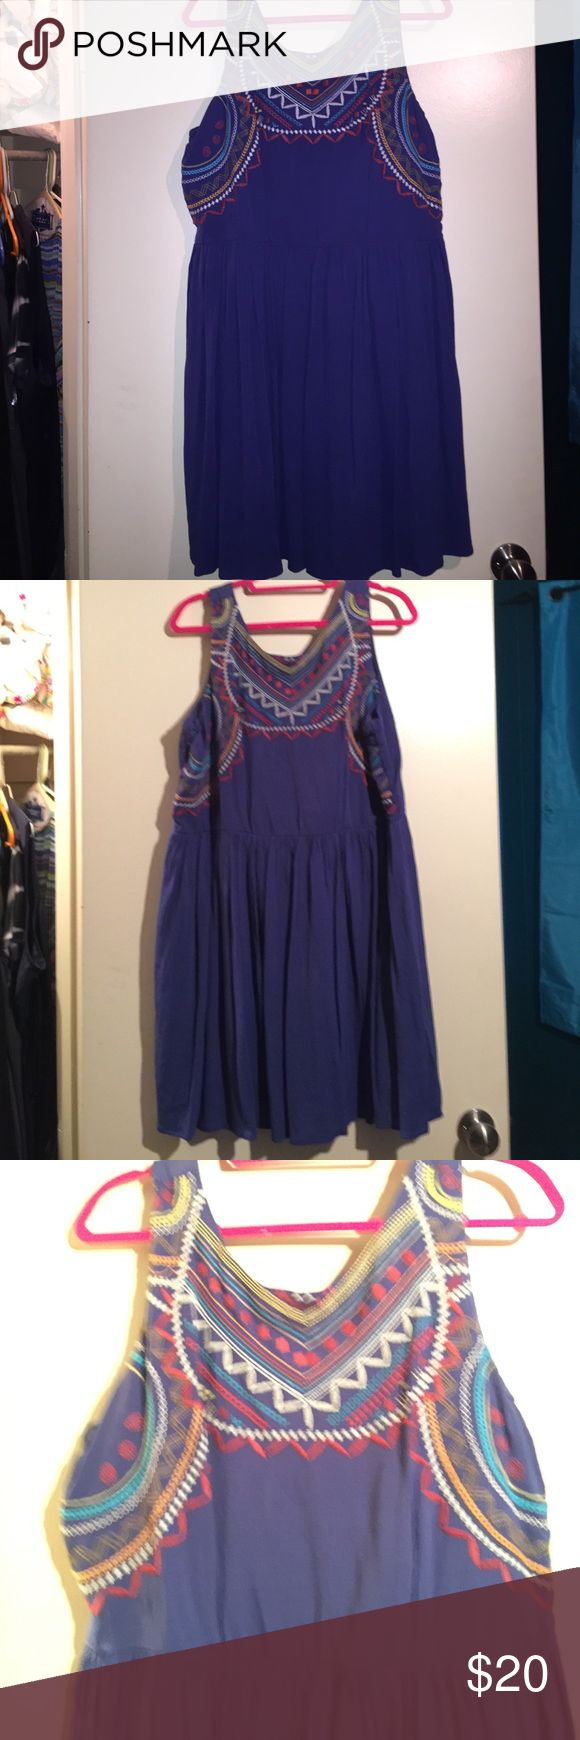 Xhilaration Plus Dress Stunning blue dress with colorful Aztec/tribal embroidery on top. Flowy and lightweight. 💃🏻👸🏻👗 Perfect for a night out with the girls, PERFECT for National Margarita day and Cinco de Mayo! Plus size XXL. Worn once. *Excellent* used condition  XXL. 2x. Plus Size. Curvy. Make an offer. Colors on top are red, white, yellow, sky blue and a touch of orange Xhilaration Dresses Mini